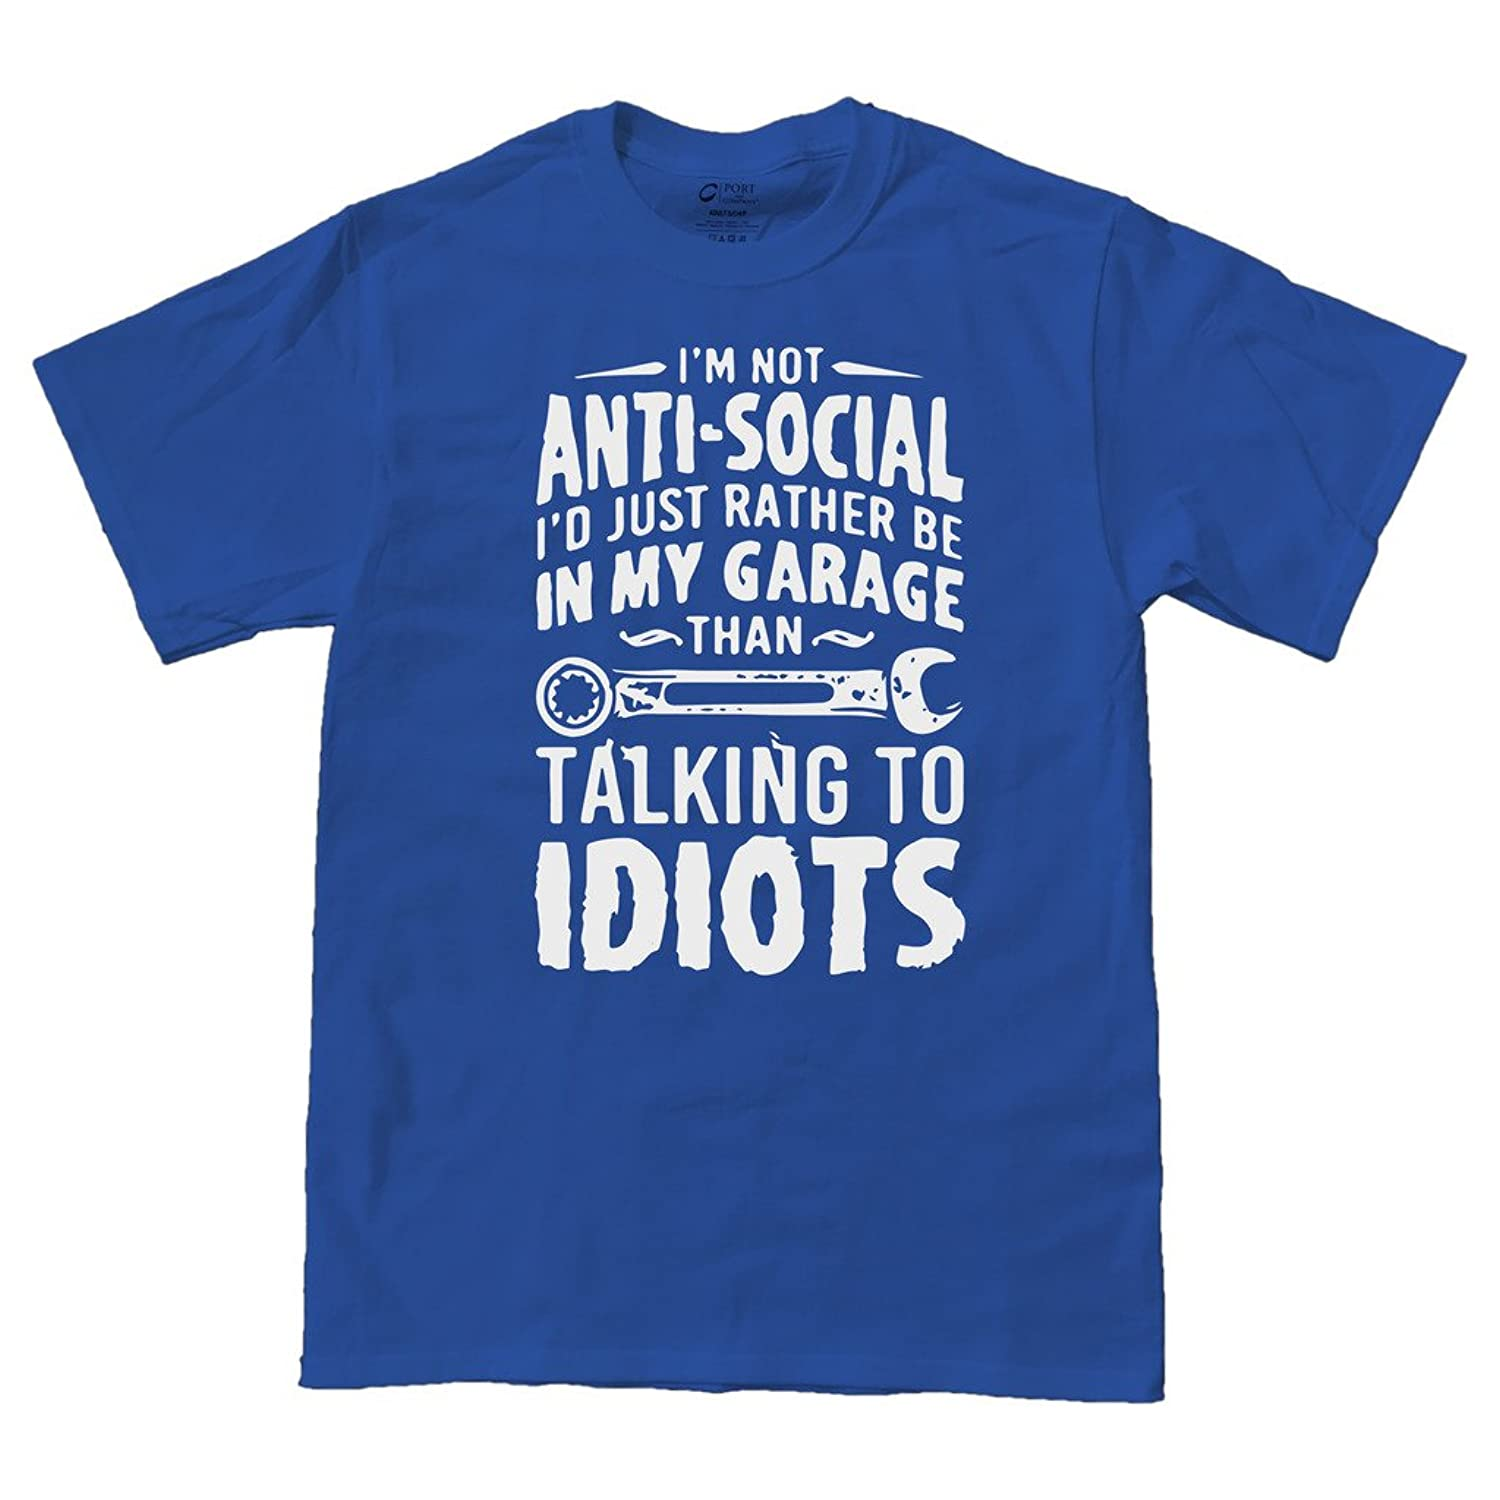 I'd Rather Be In My Garage Than Talking to IDIOTS  Unisex T-Shirt